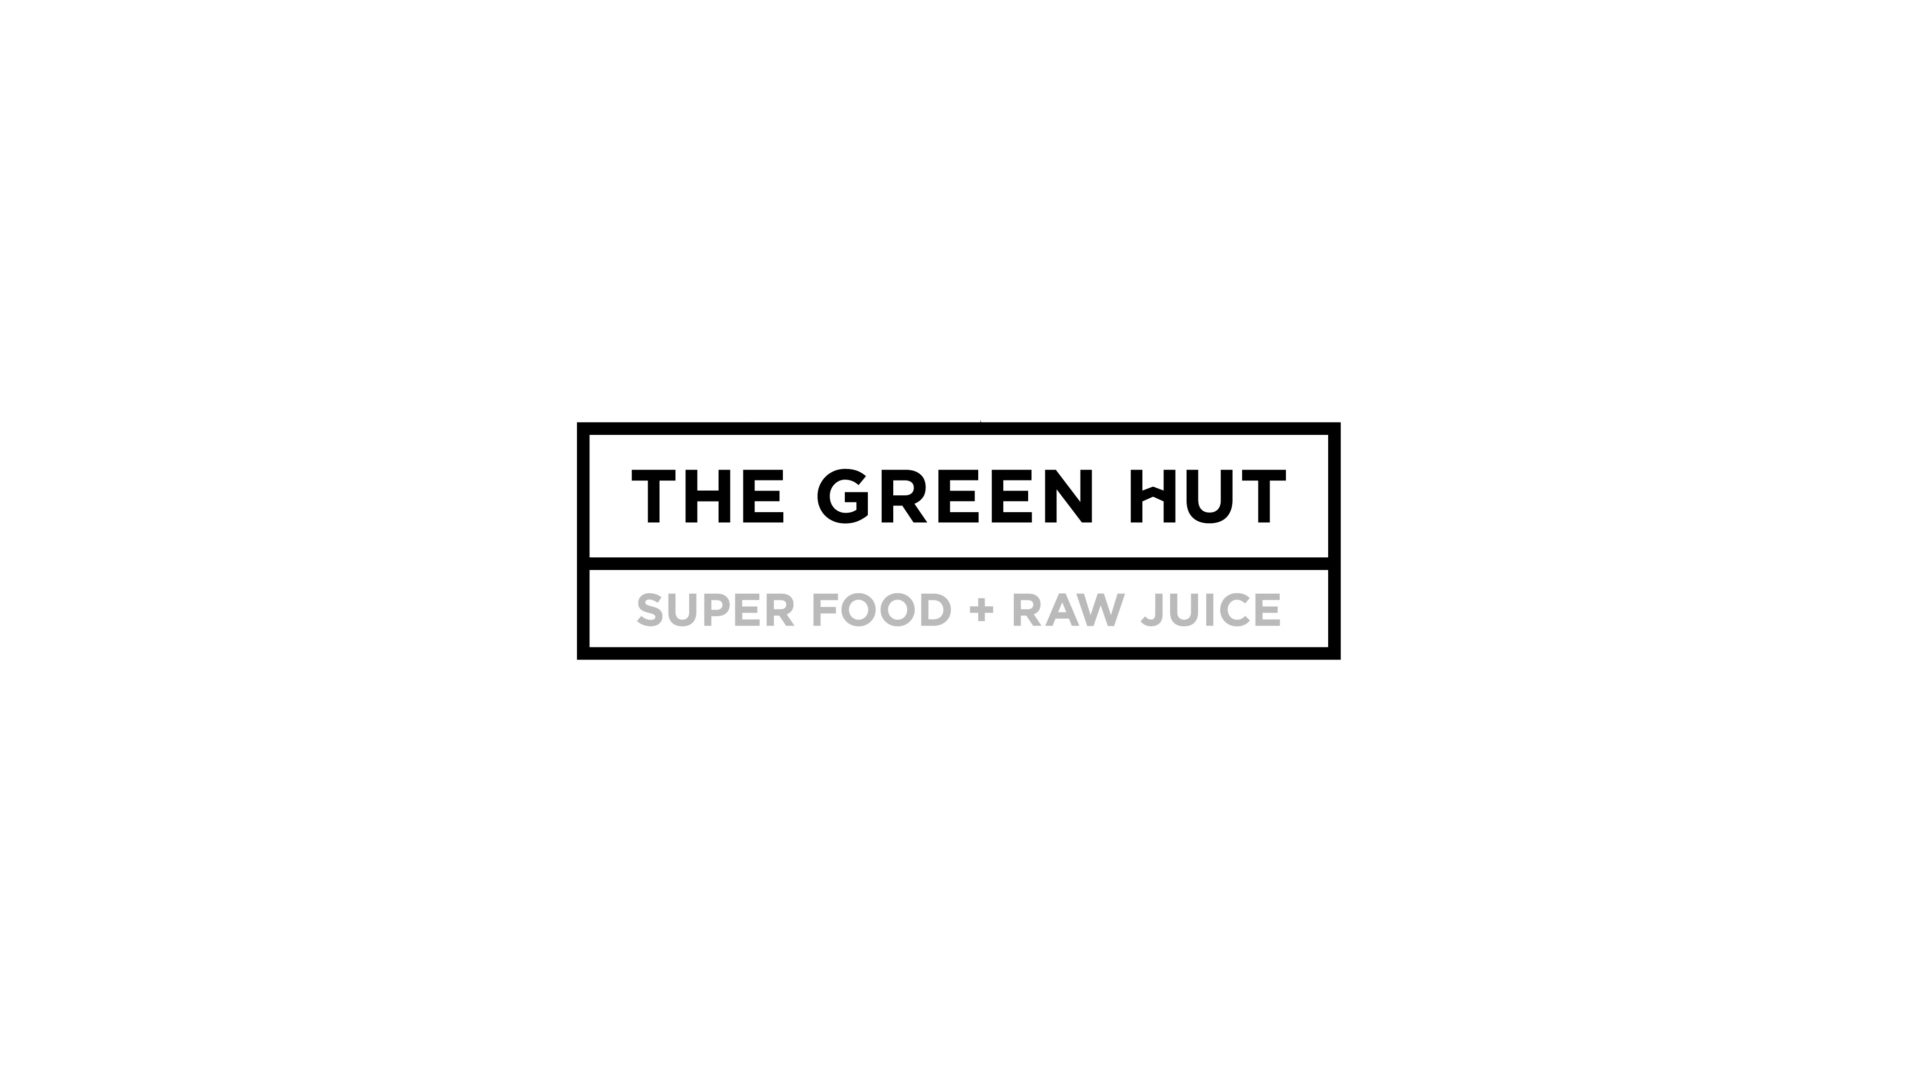 black and white The Green Hut logo